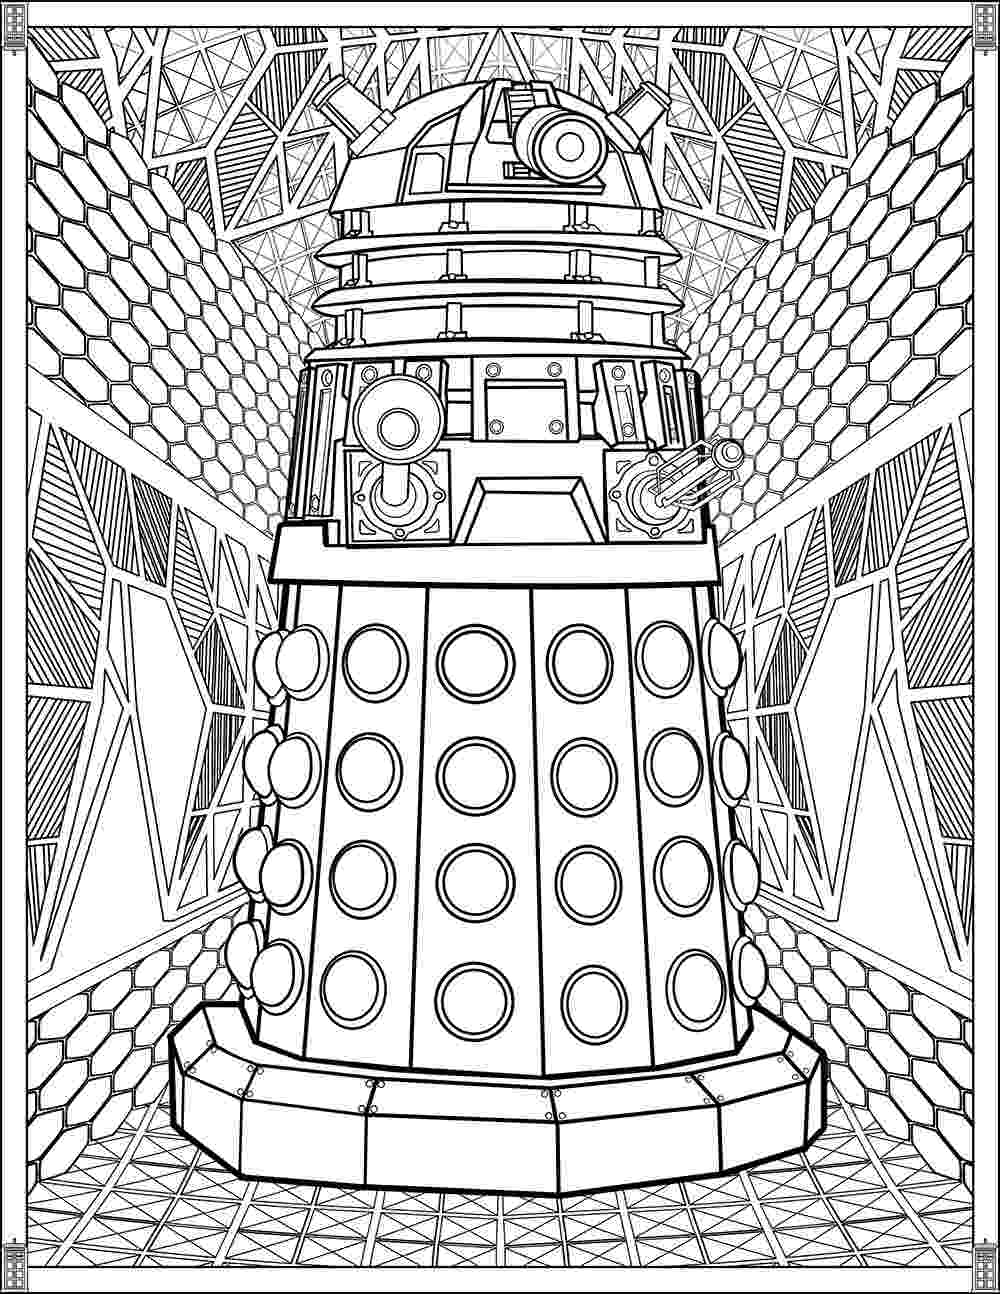 dr who pictures to colour 7 free doctor who fan art coloring books plus bonus colour to pictures who dr